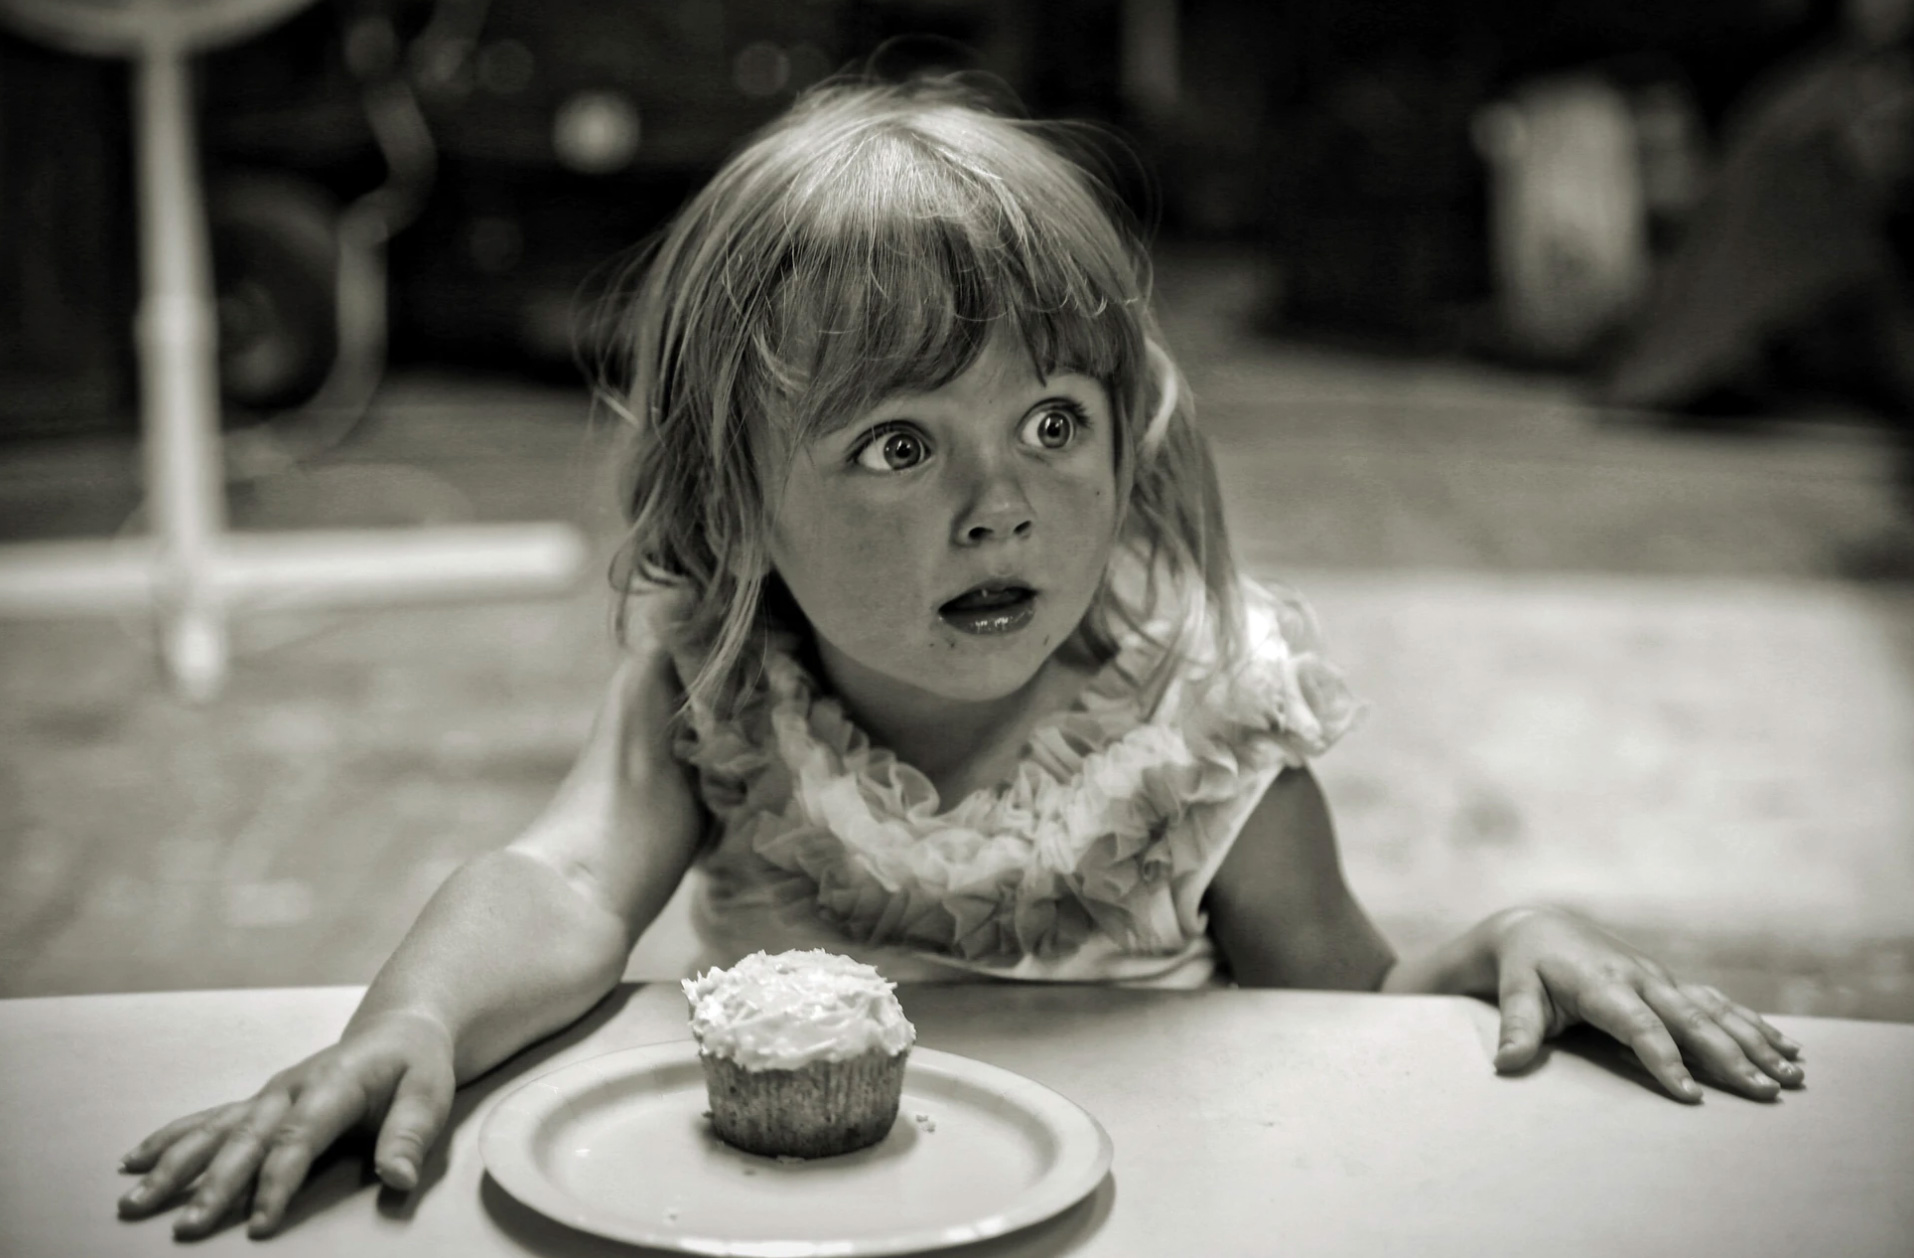 Black and white photo with little girl sitting in front of a cupcake and surprised.